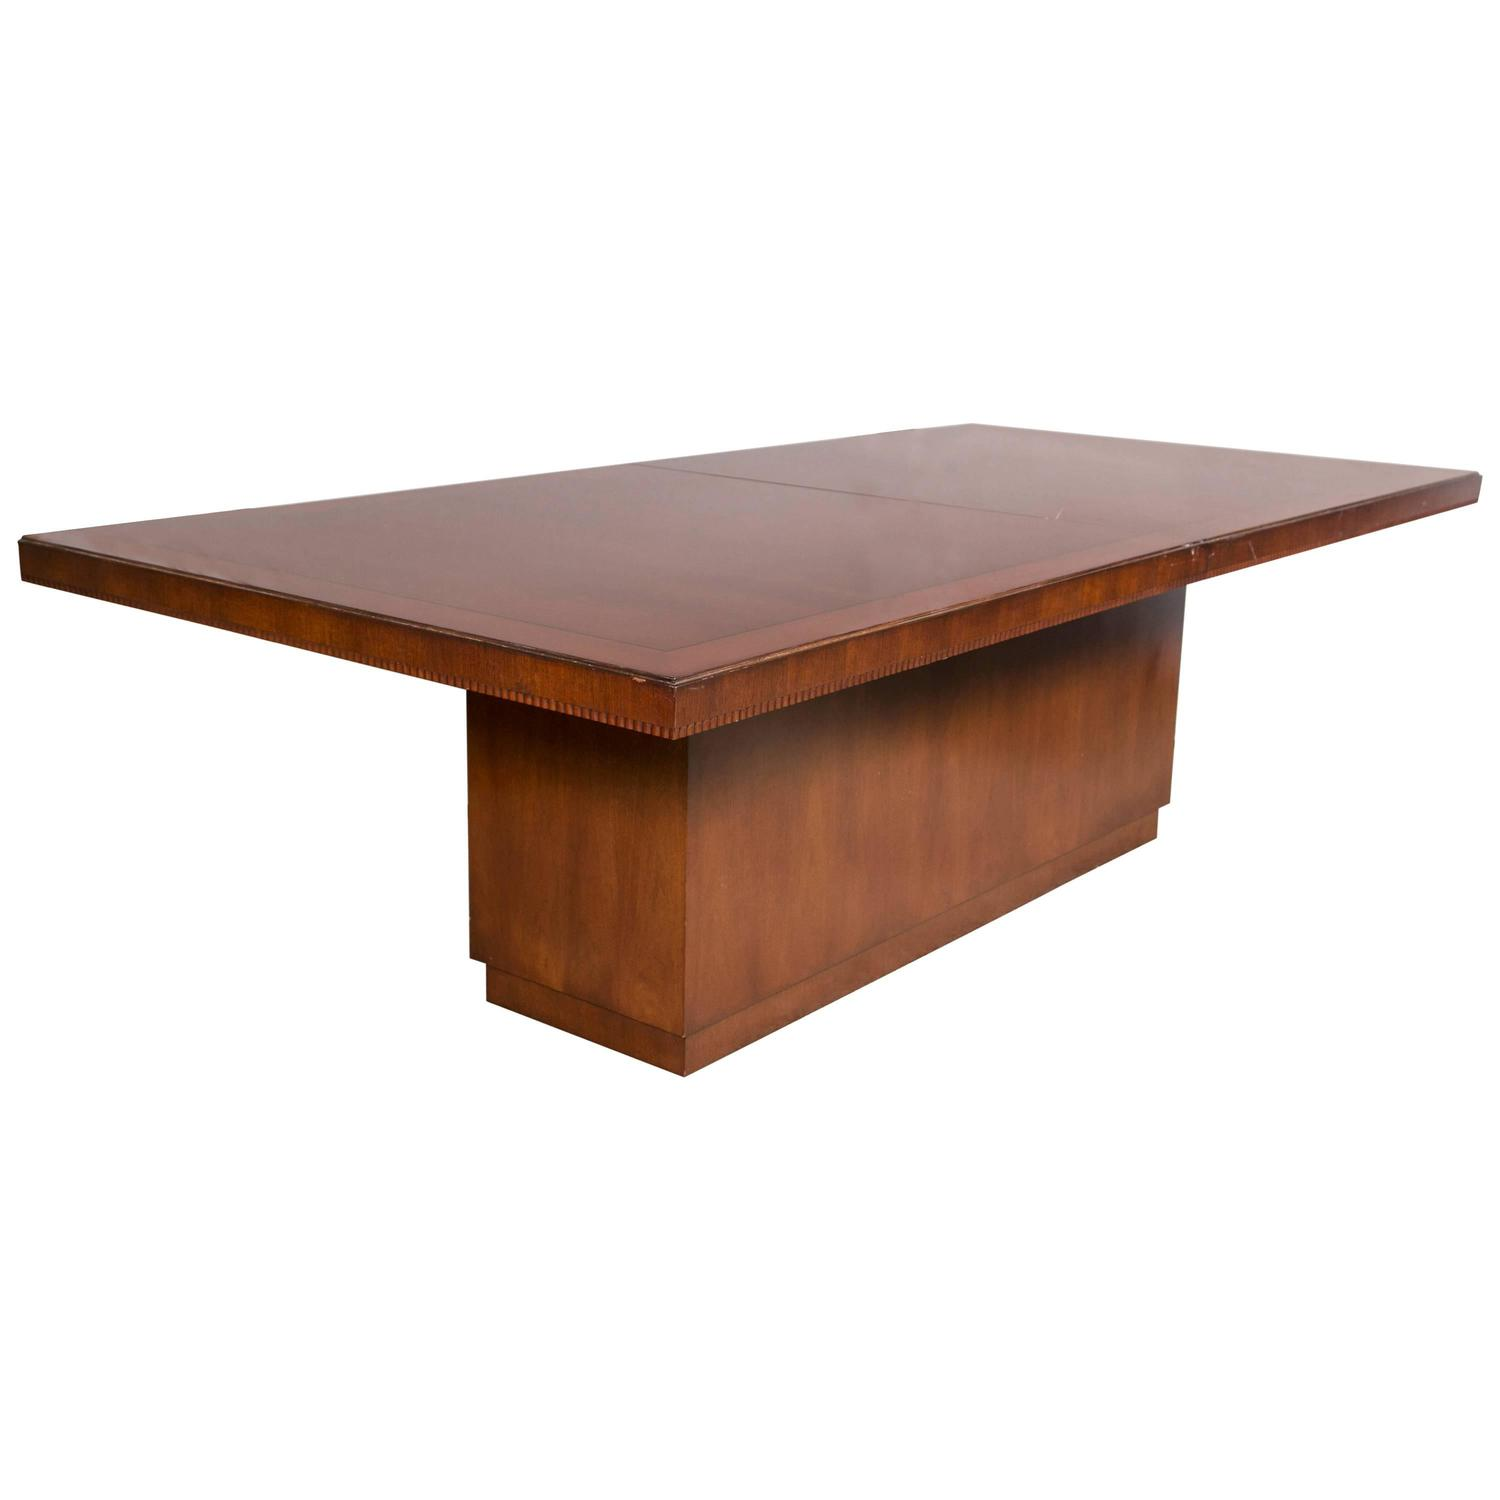 Ralph lauren palaical modern hollywood dining table for for Modern dining tables sale